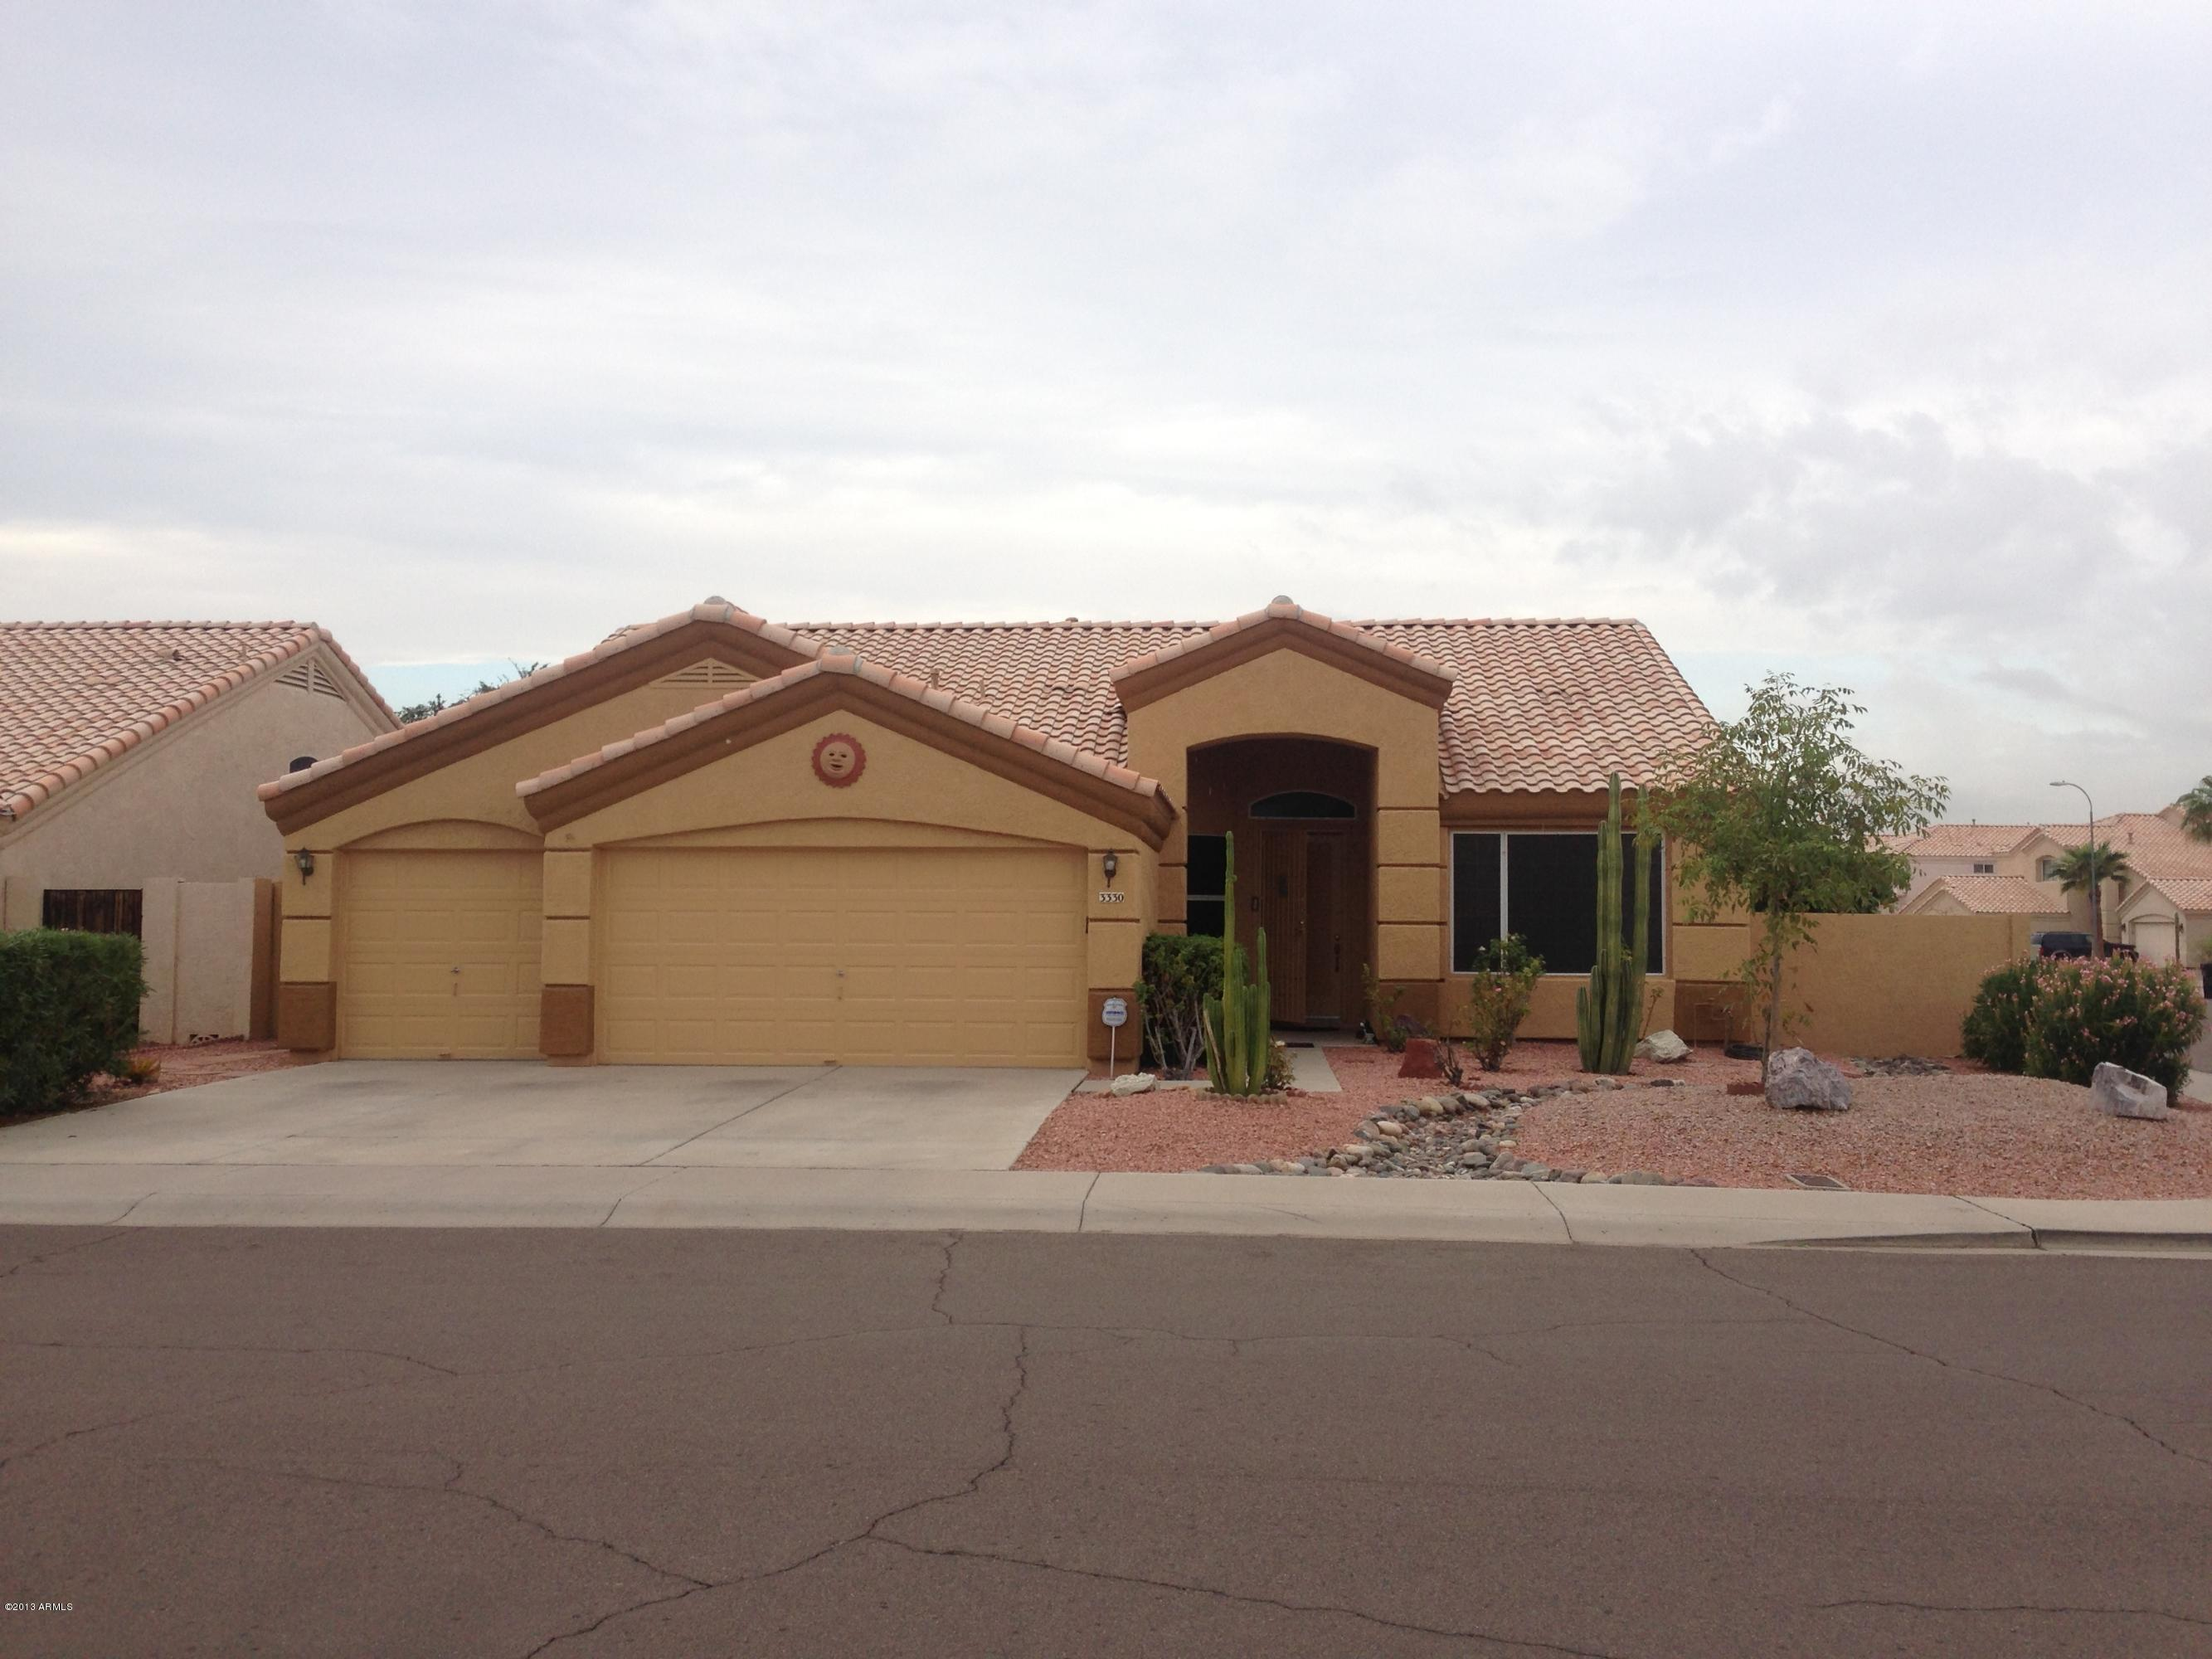 3330 N 115TH Lane, Avondale, AZ 85392 (MLS# 4996762) - Desert Ridge ...